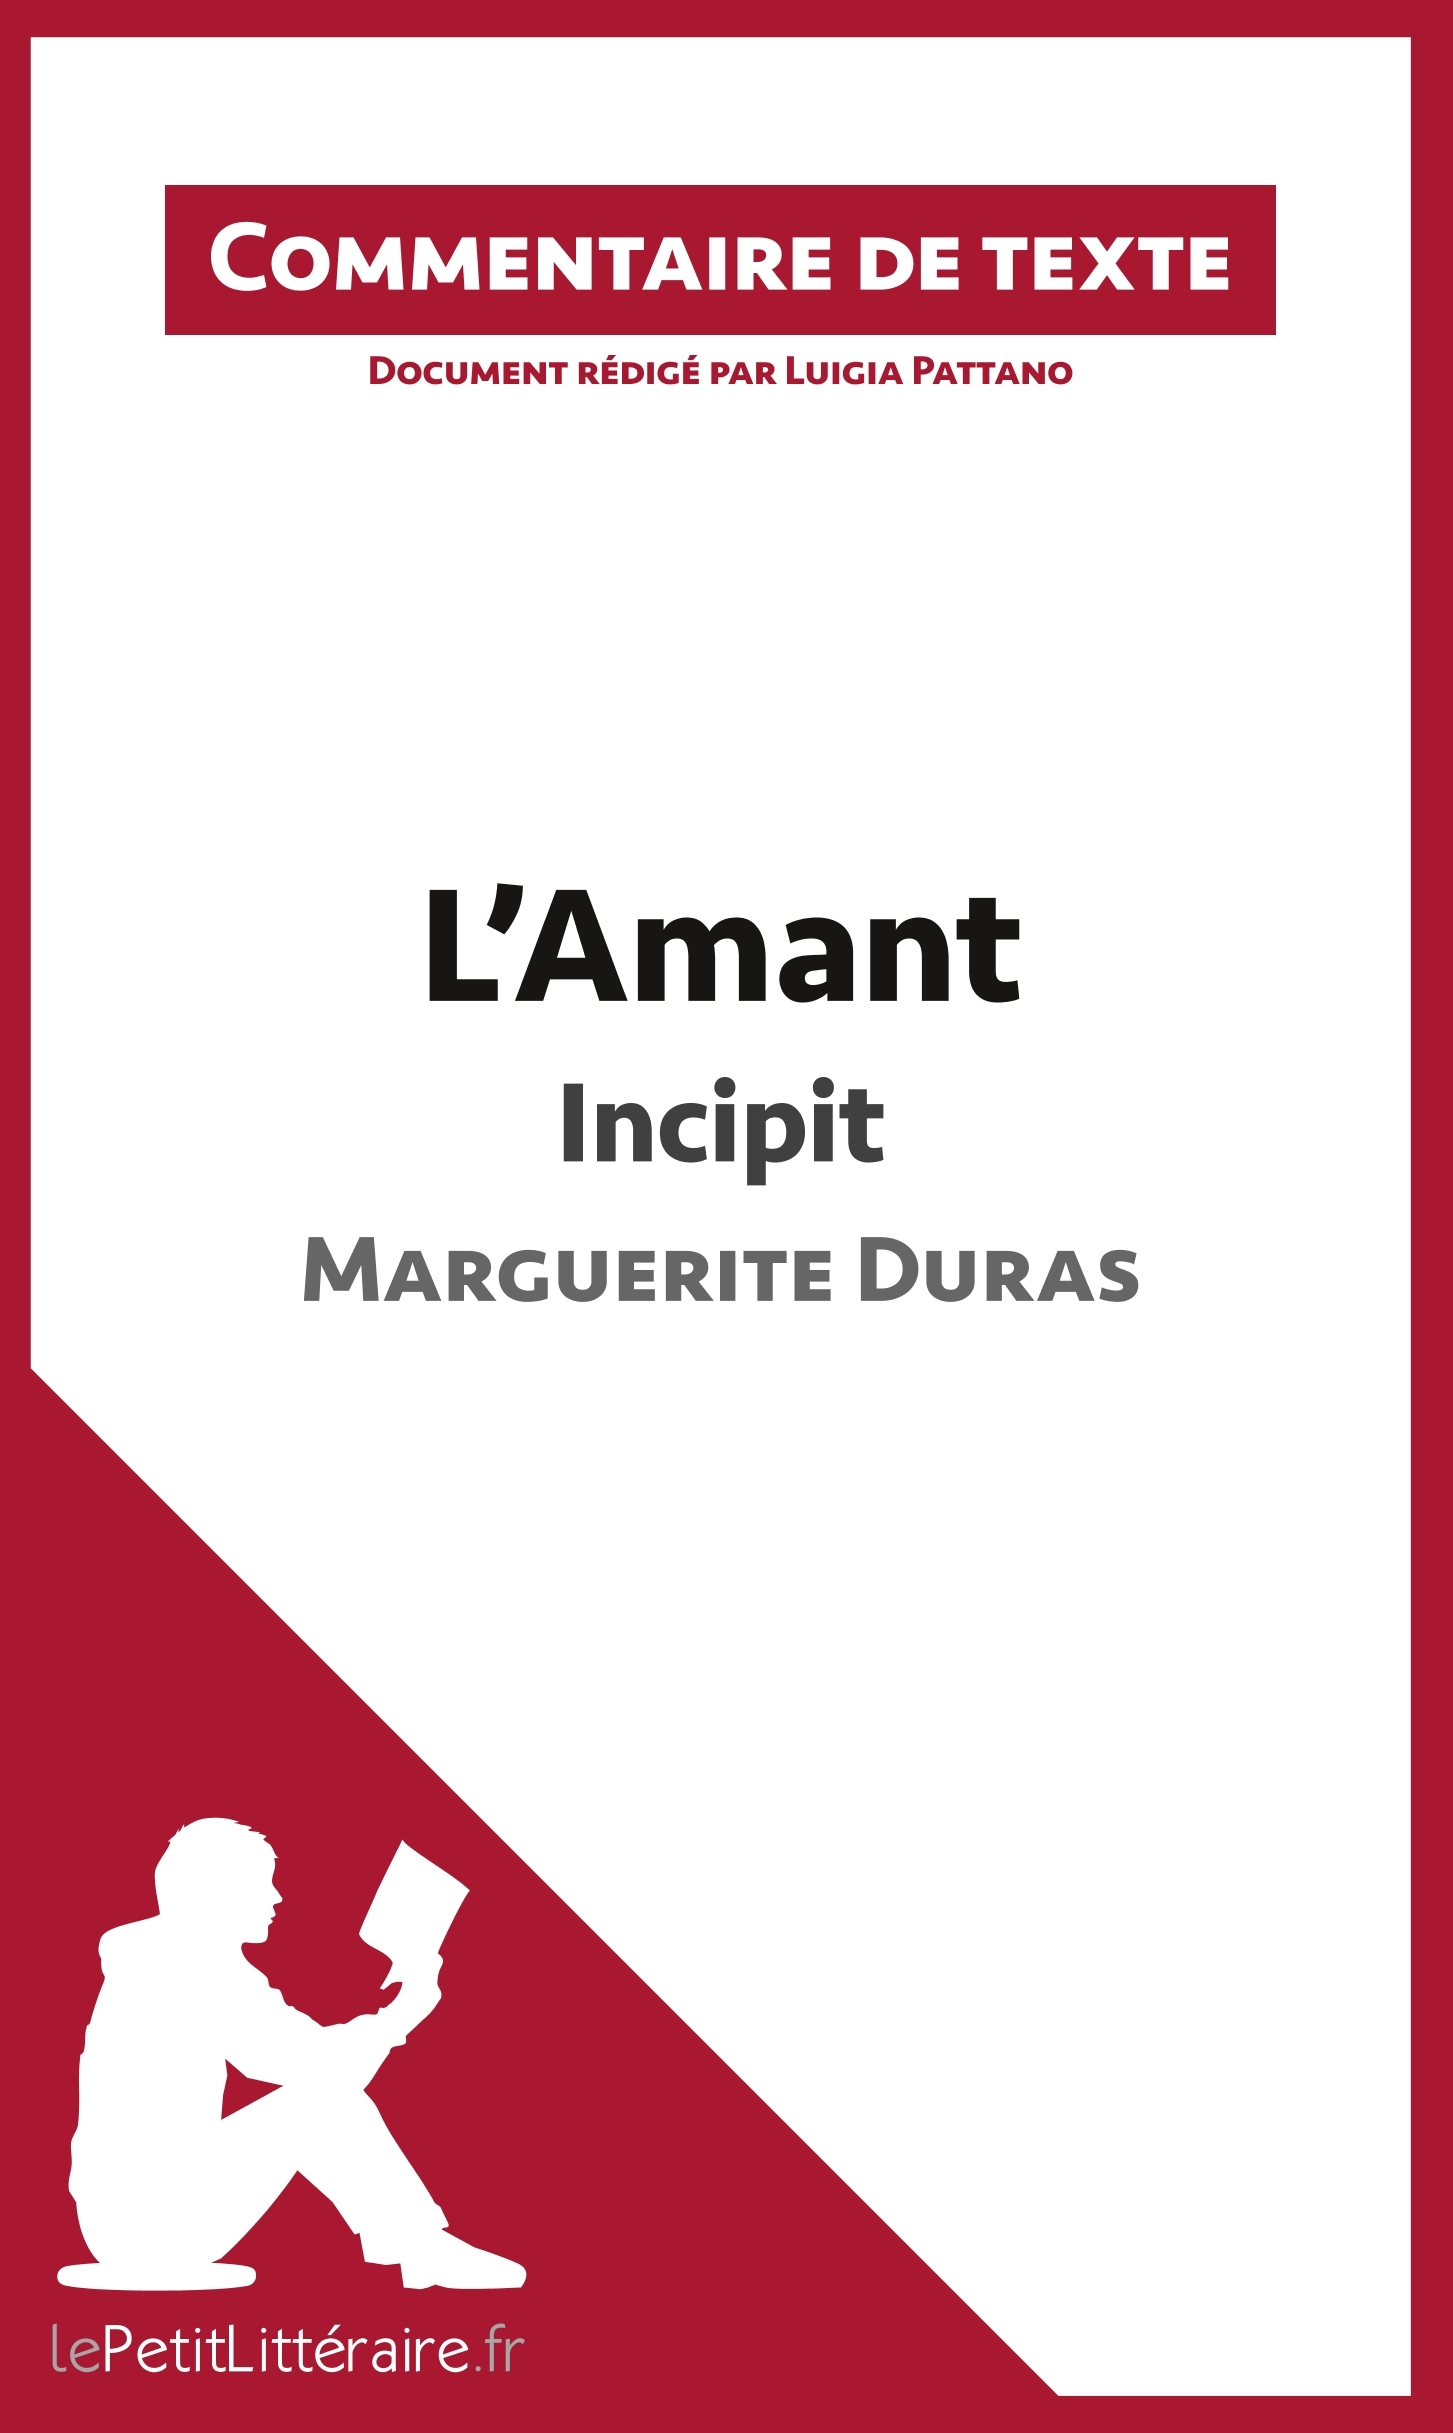 COMMENTAIRE COMPOSE L AMANT DE MARGUERITE DURAS INCIPIT